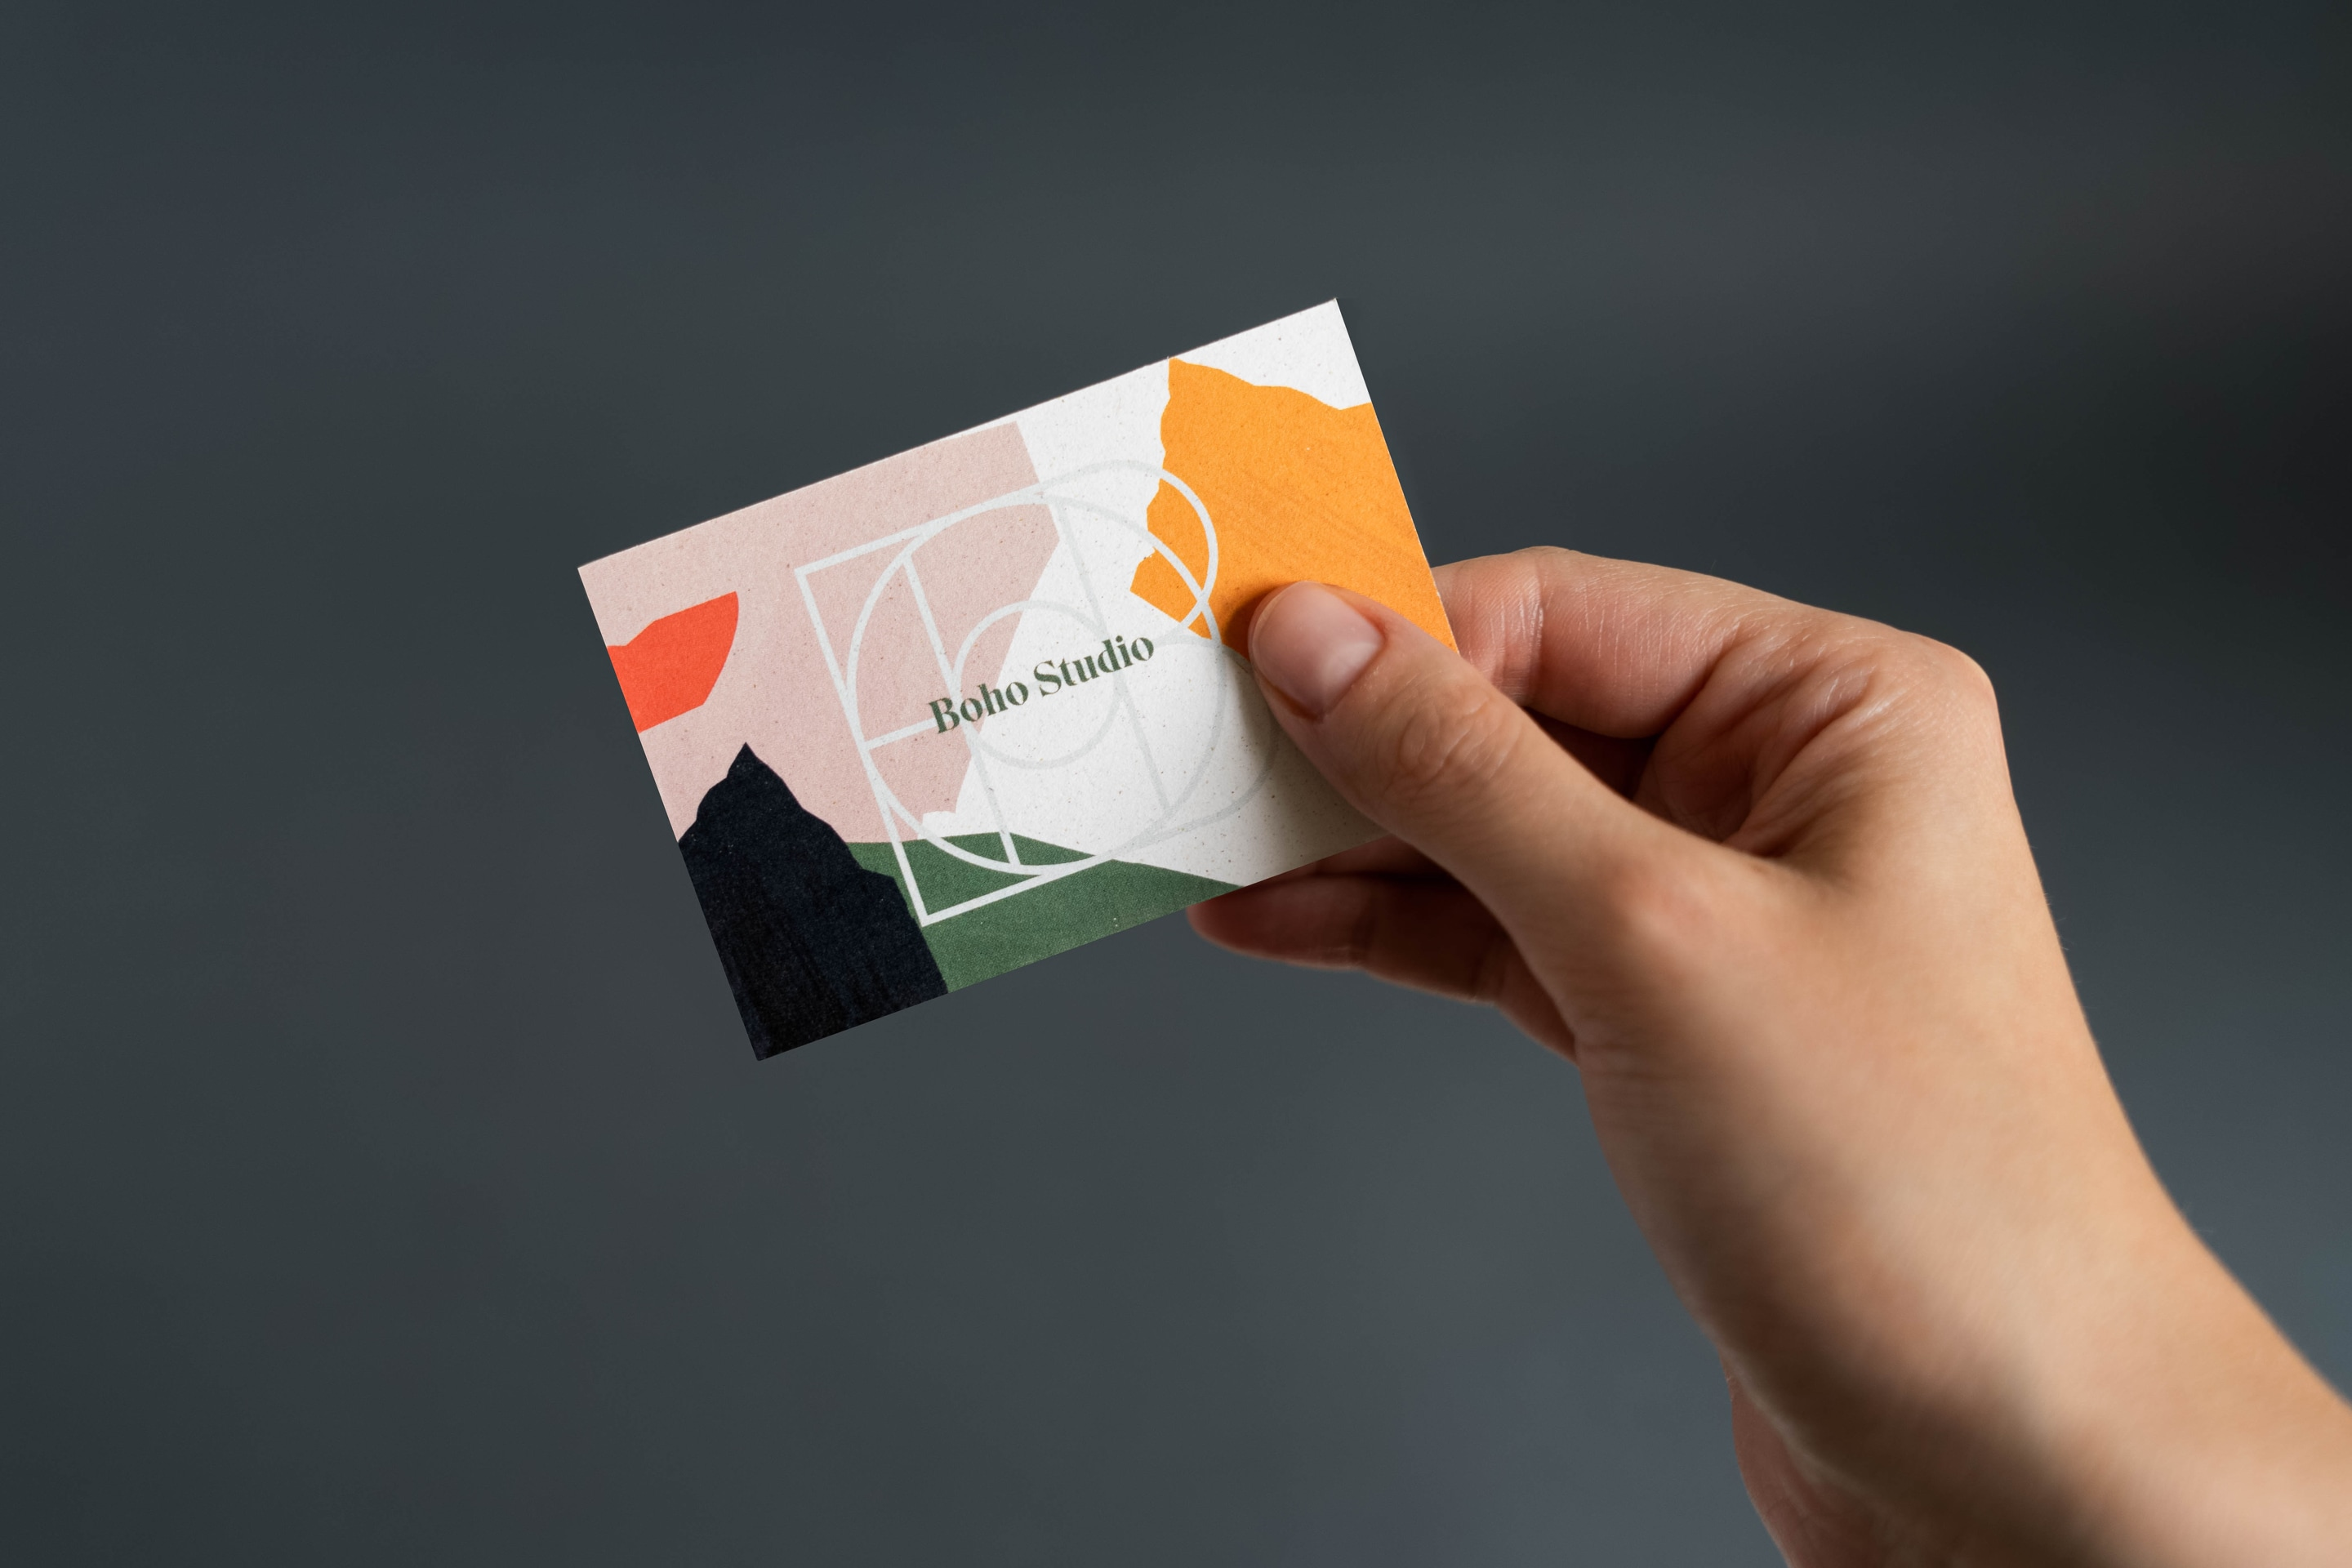 Business Card - Boho Studio by Uniforma